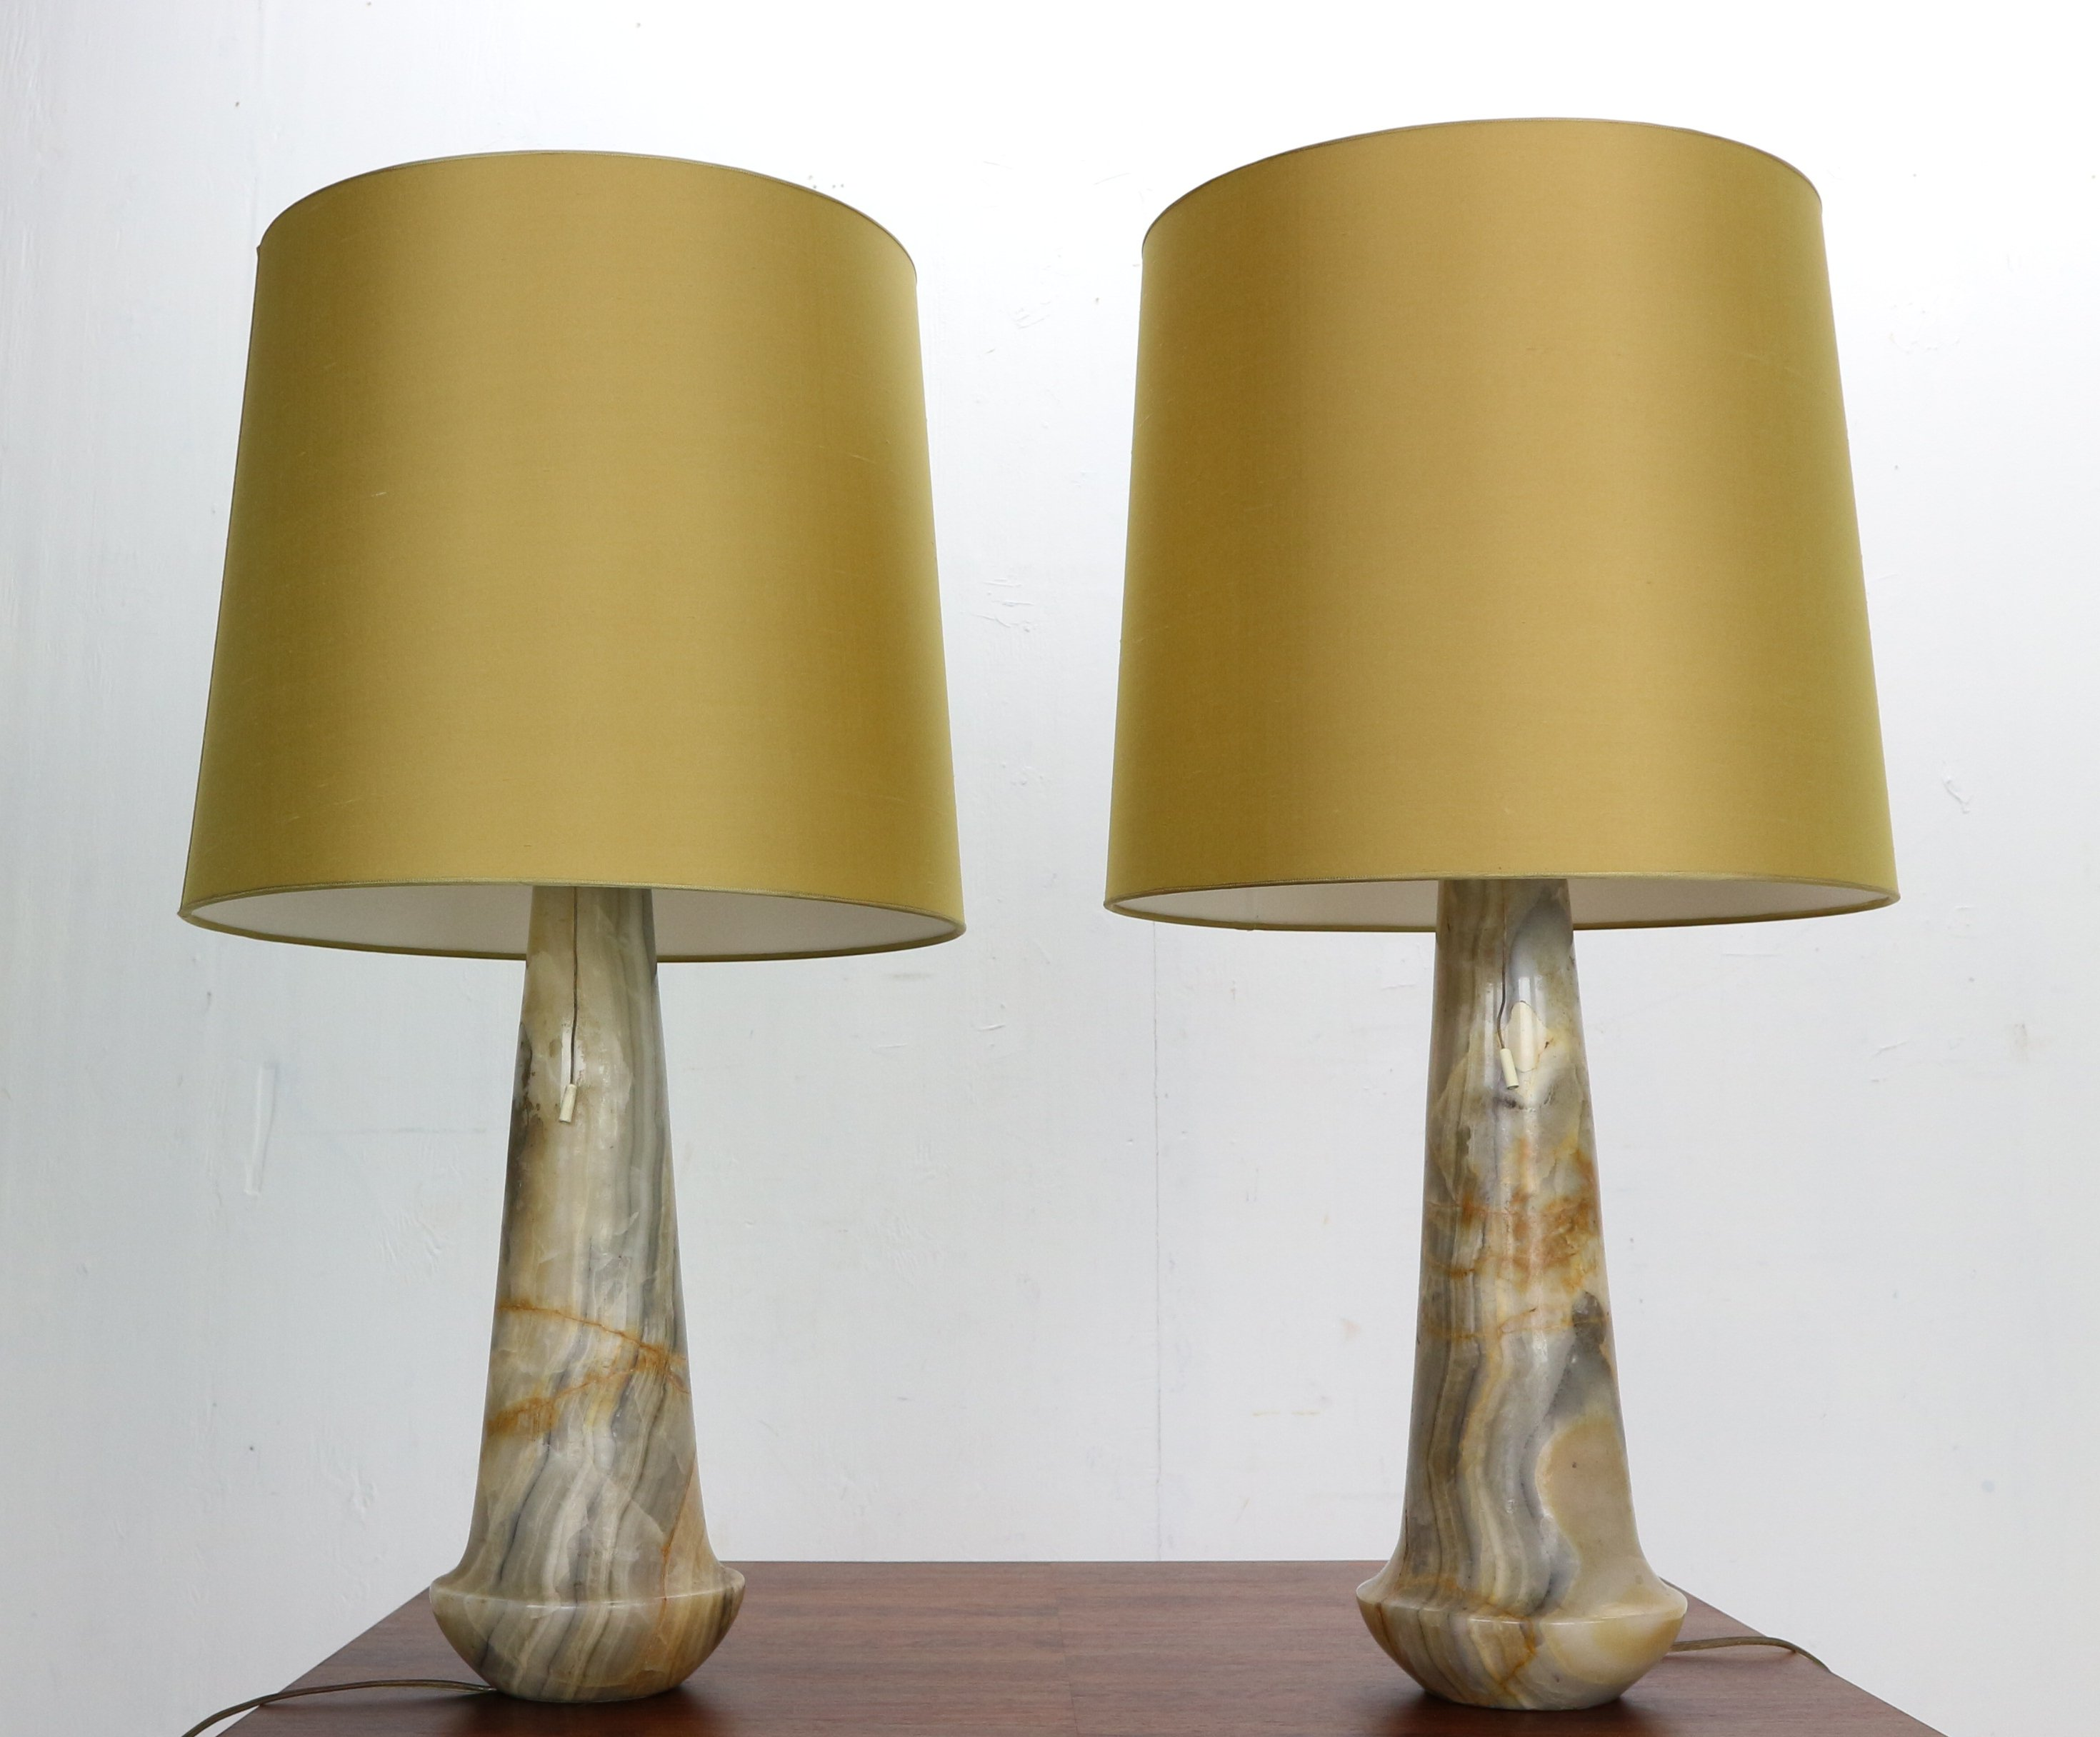 Set Of 2 Mid Century Modern Marble Table Nightstand Lamps Italy 1960s 150931